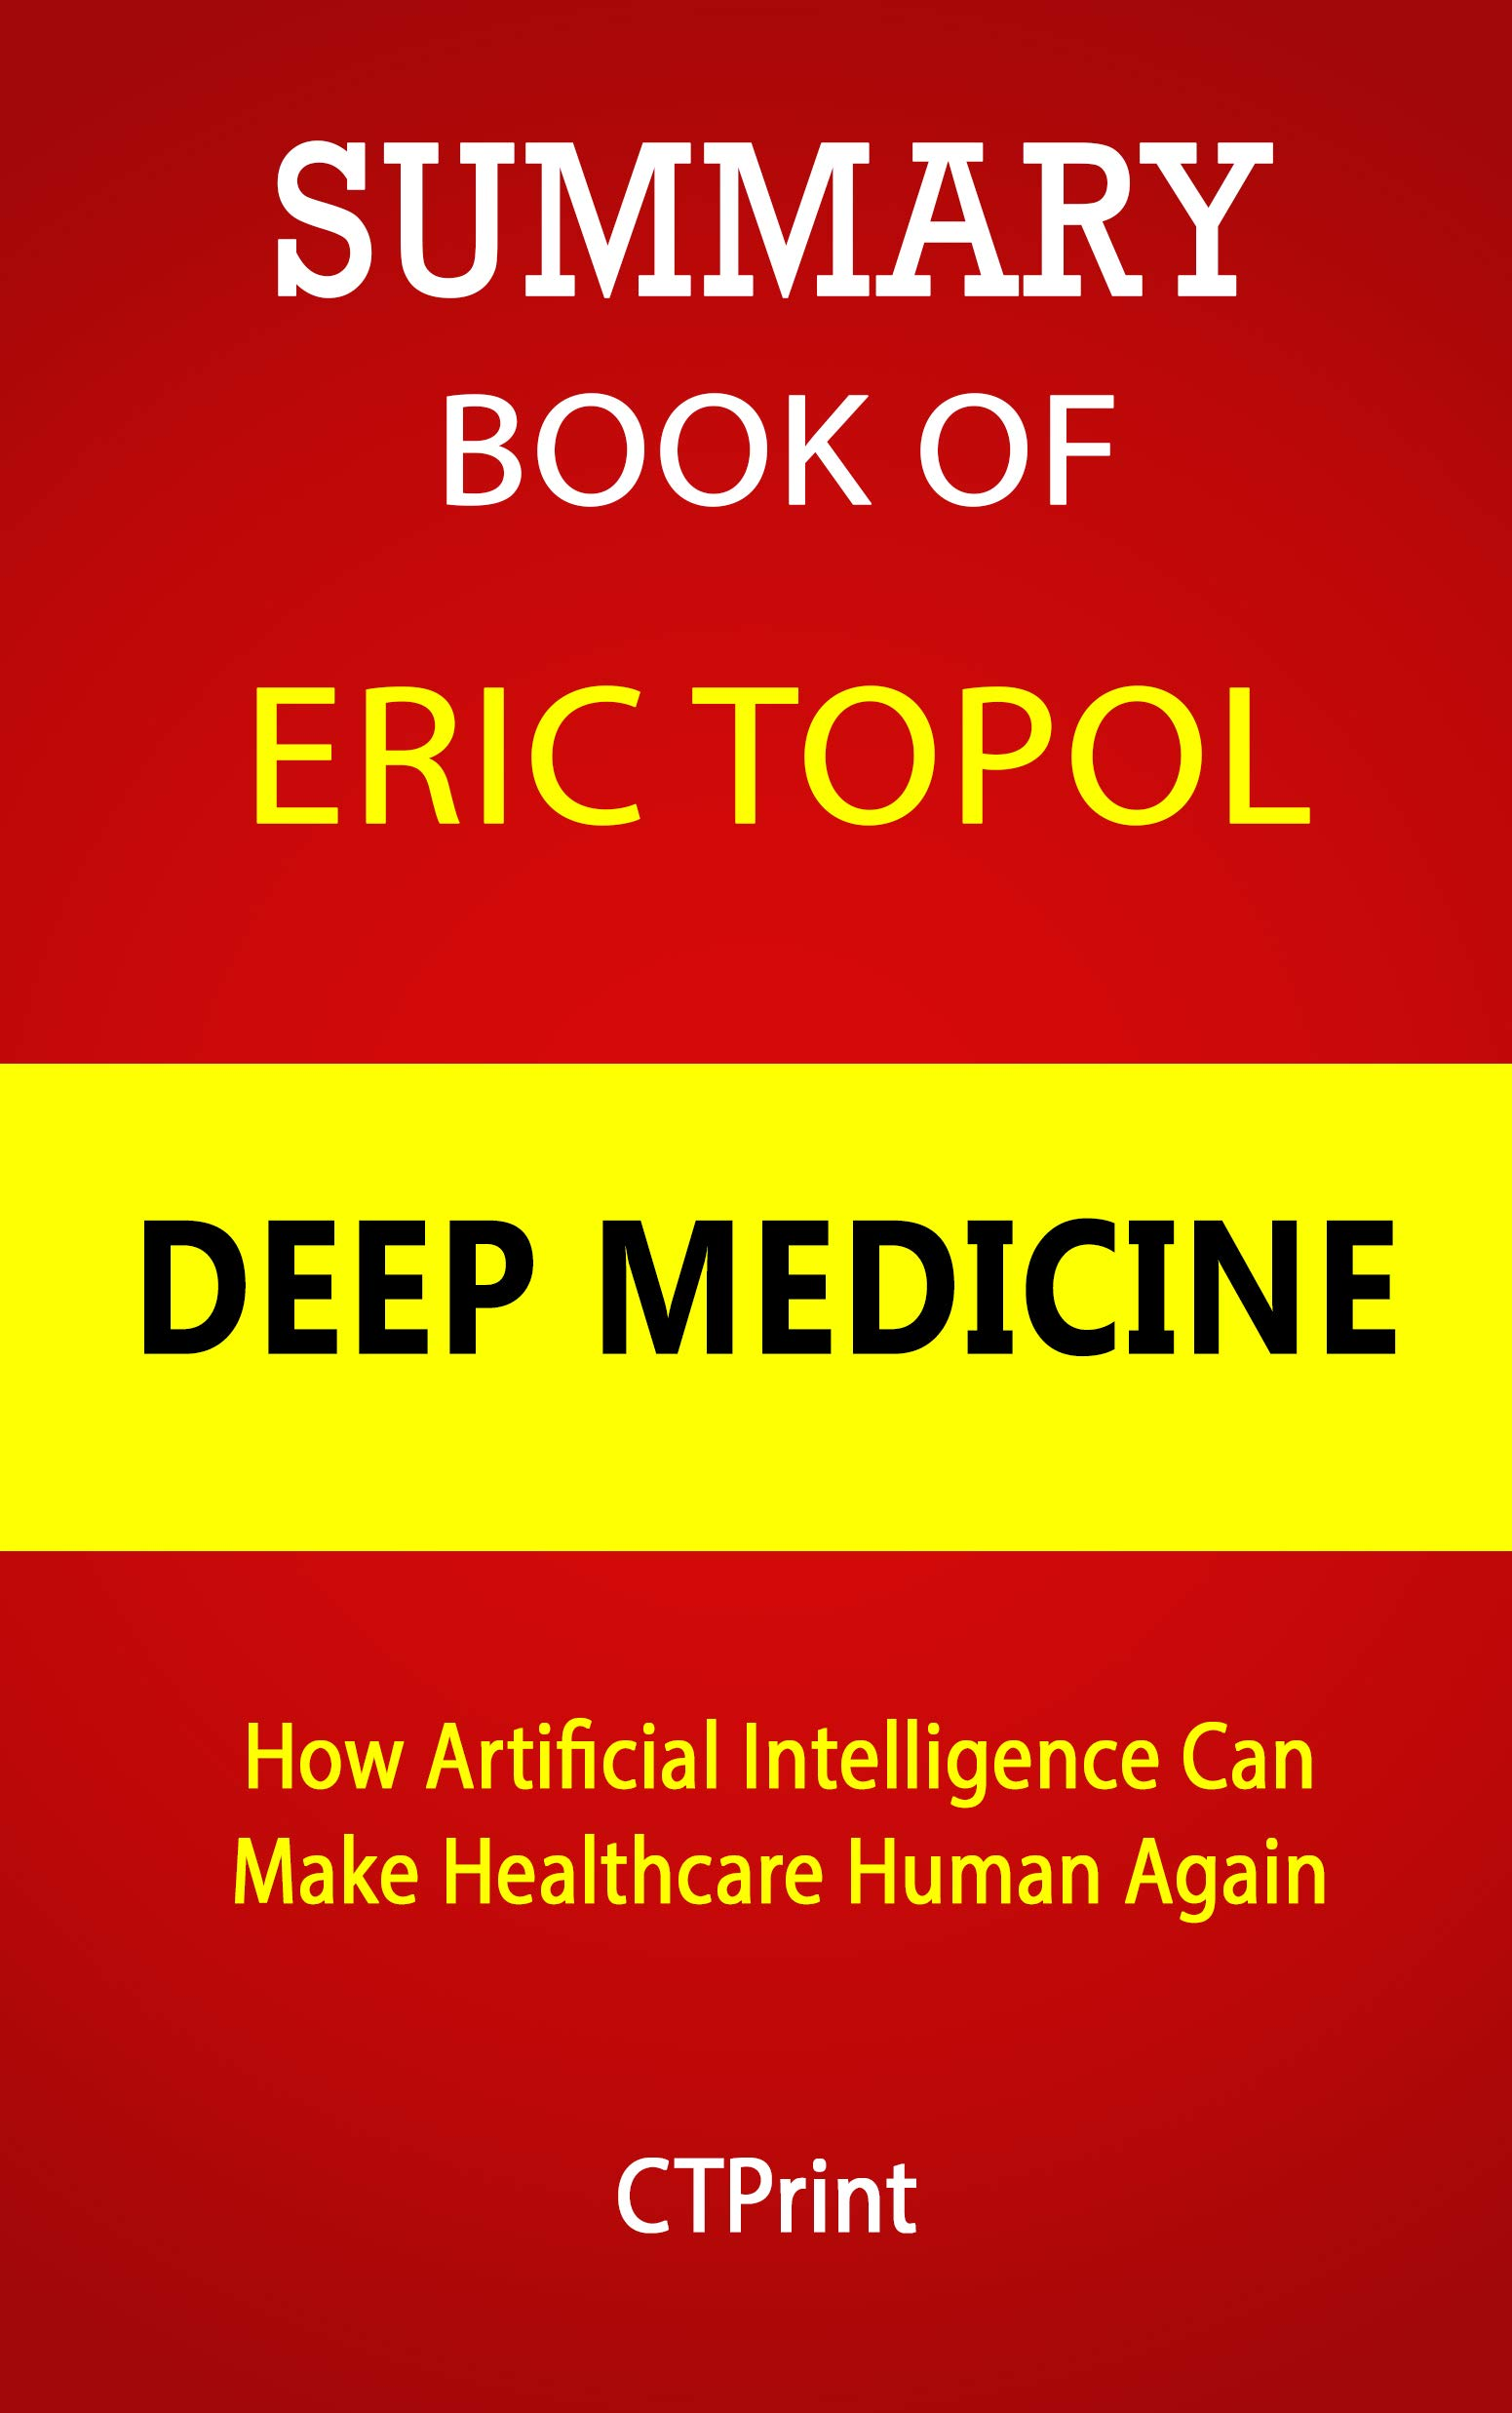 Summary Book of Eric Topol; Deep Medicine: How Artificial Intelligence Can Make Healthcare Human Again